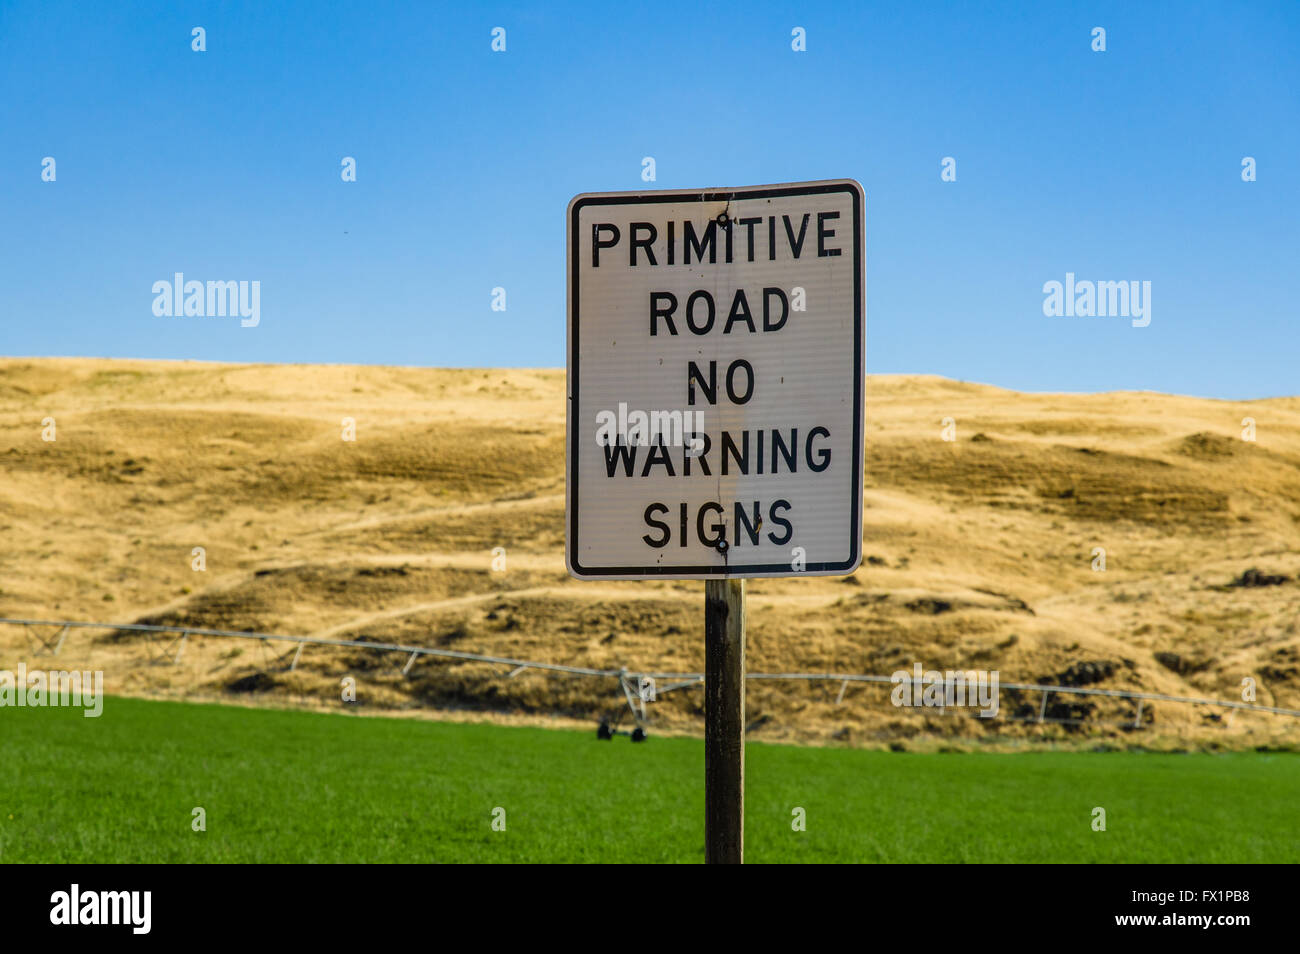 Road sign in rural eastern Washington warning of primitive road conditions - Stock Image